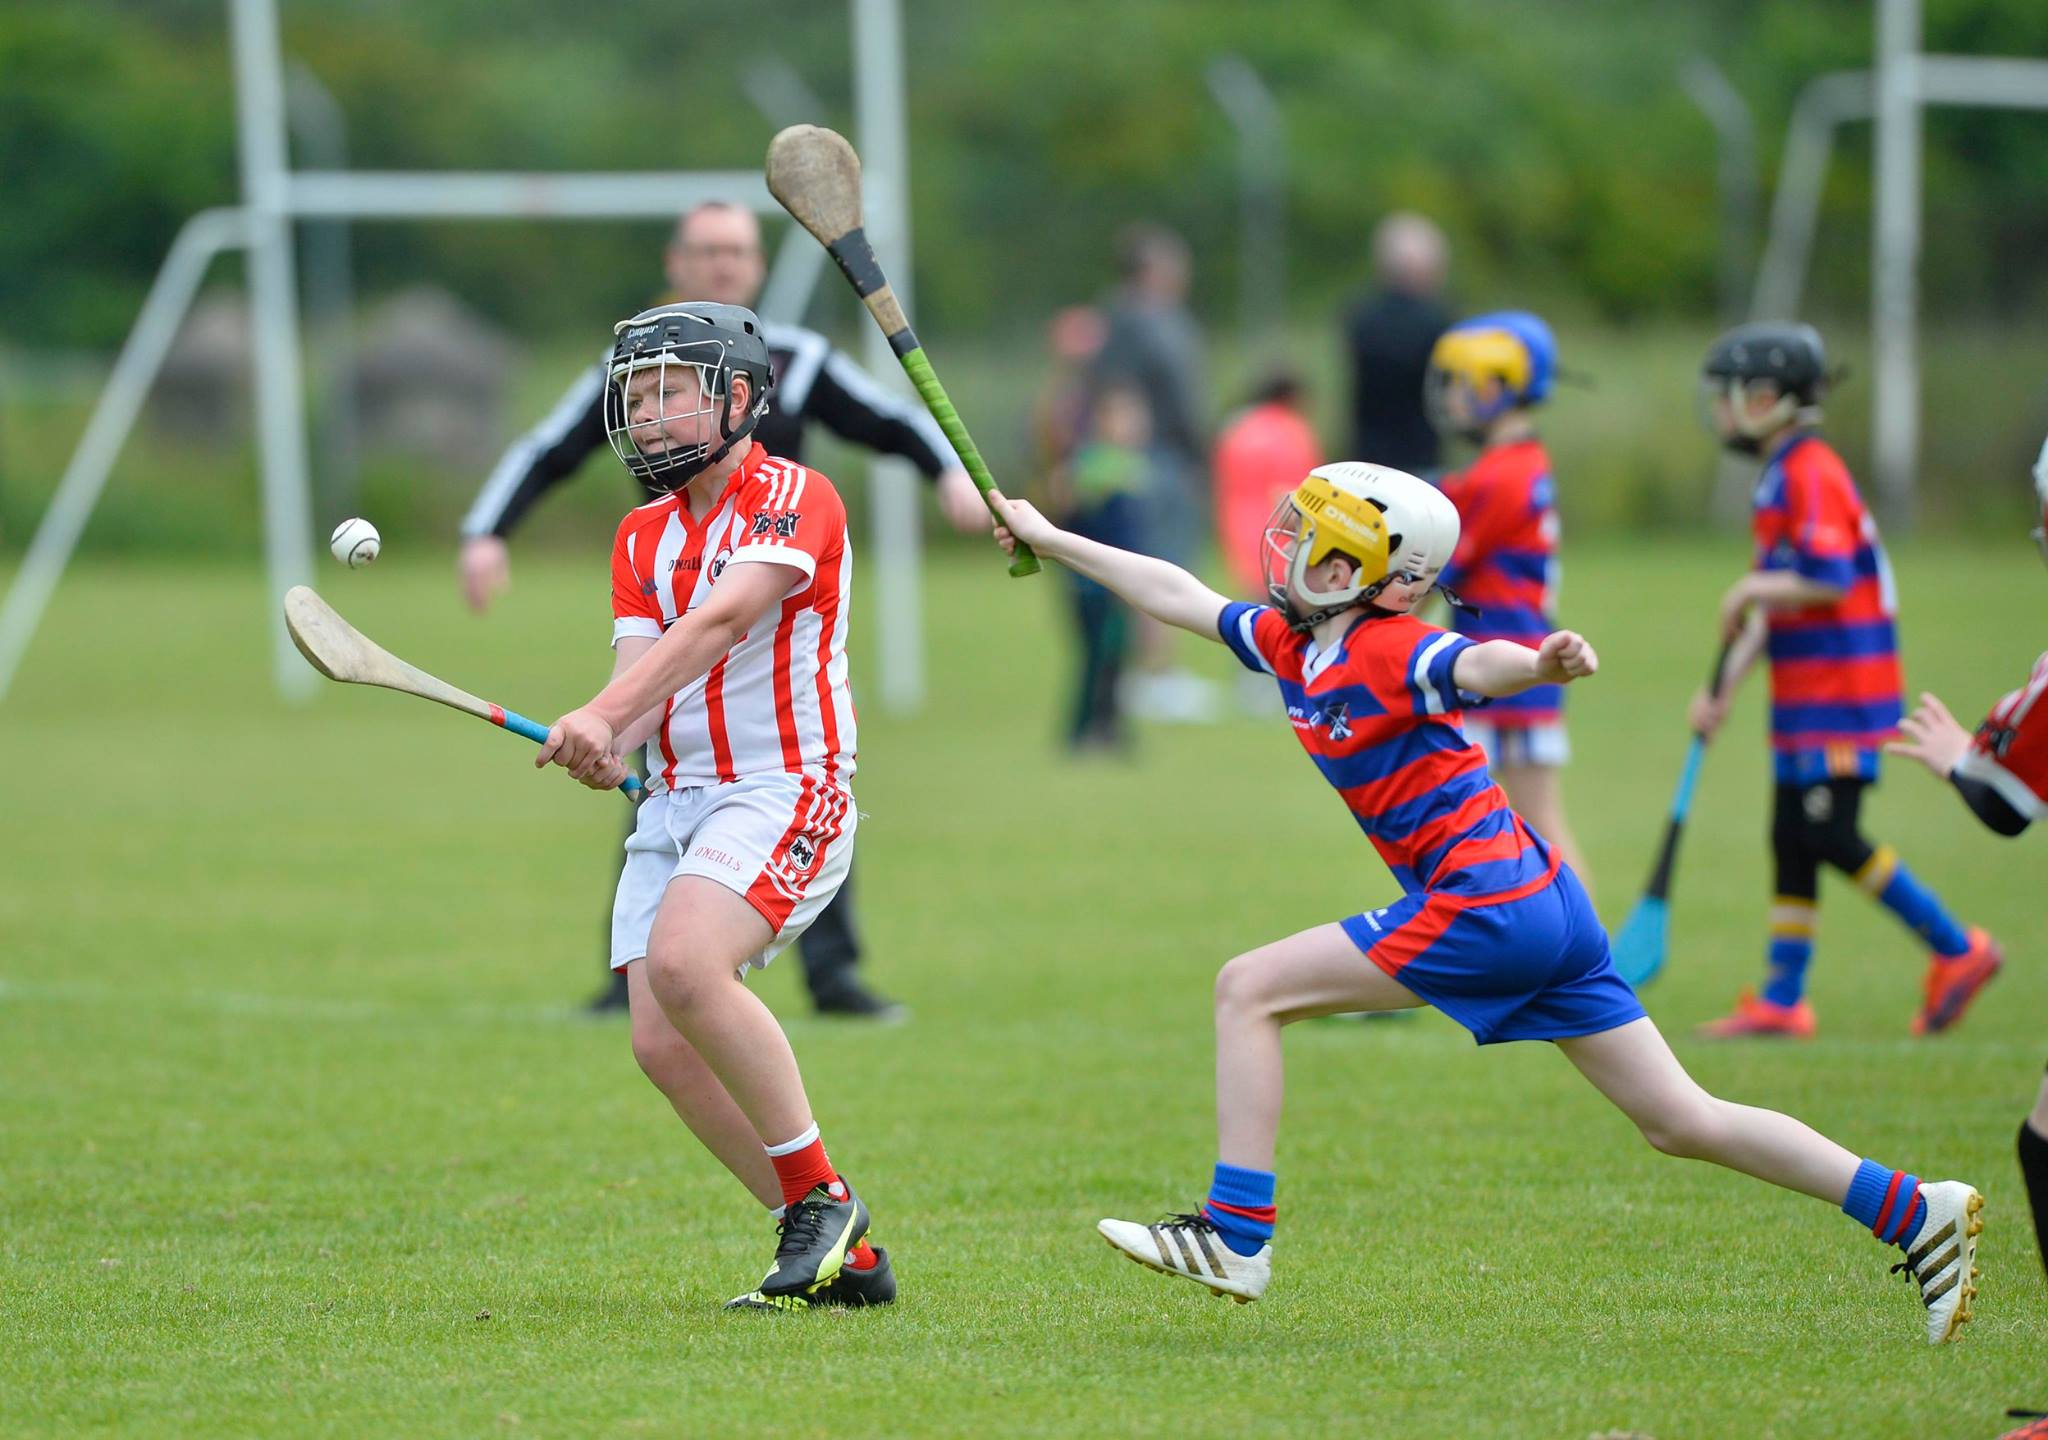 Hurling Go Games at Mugrave Park Saturday 10th June